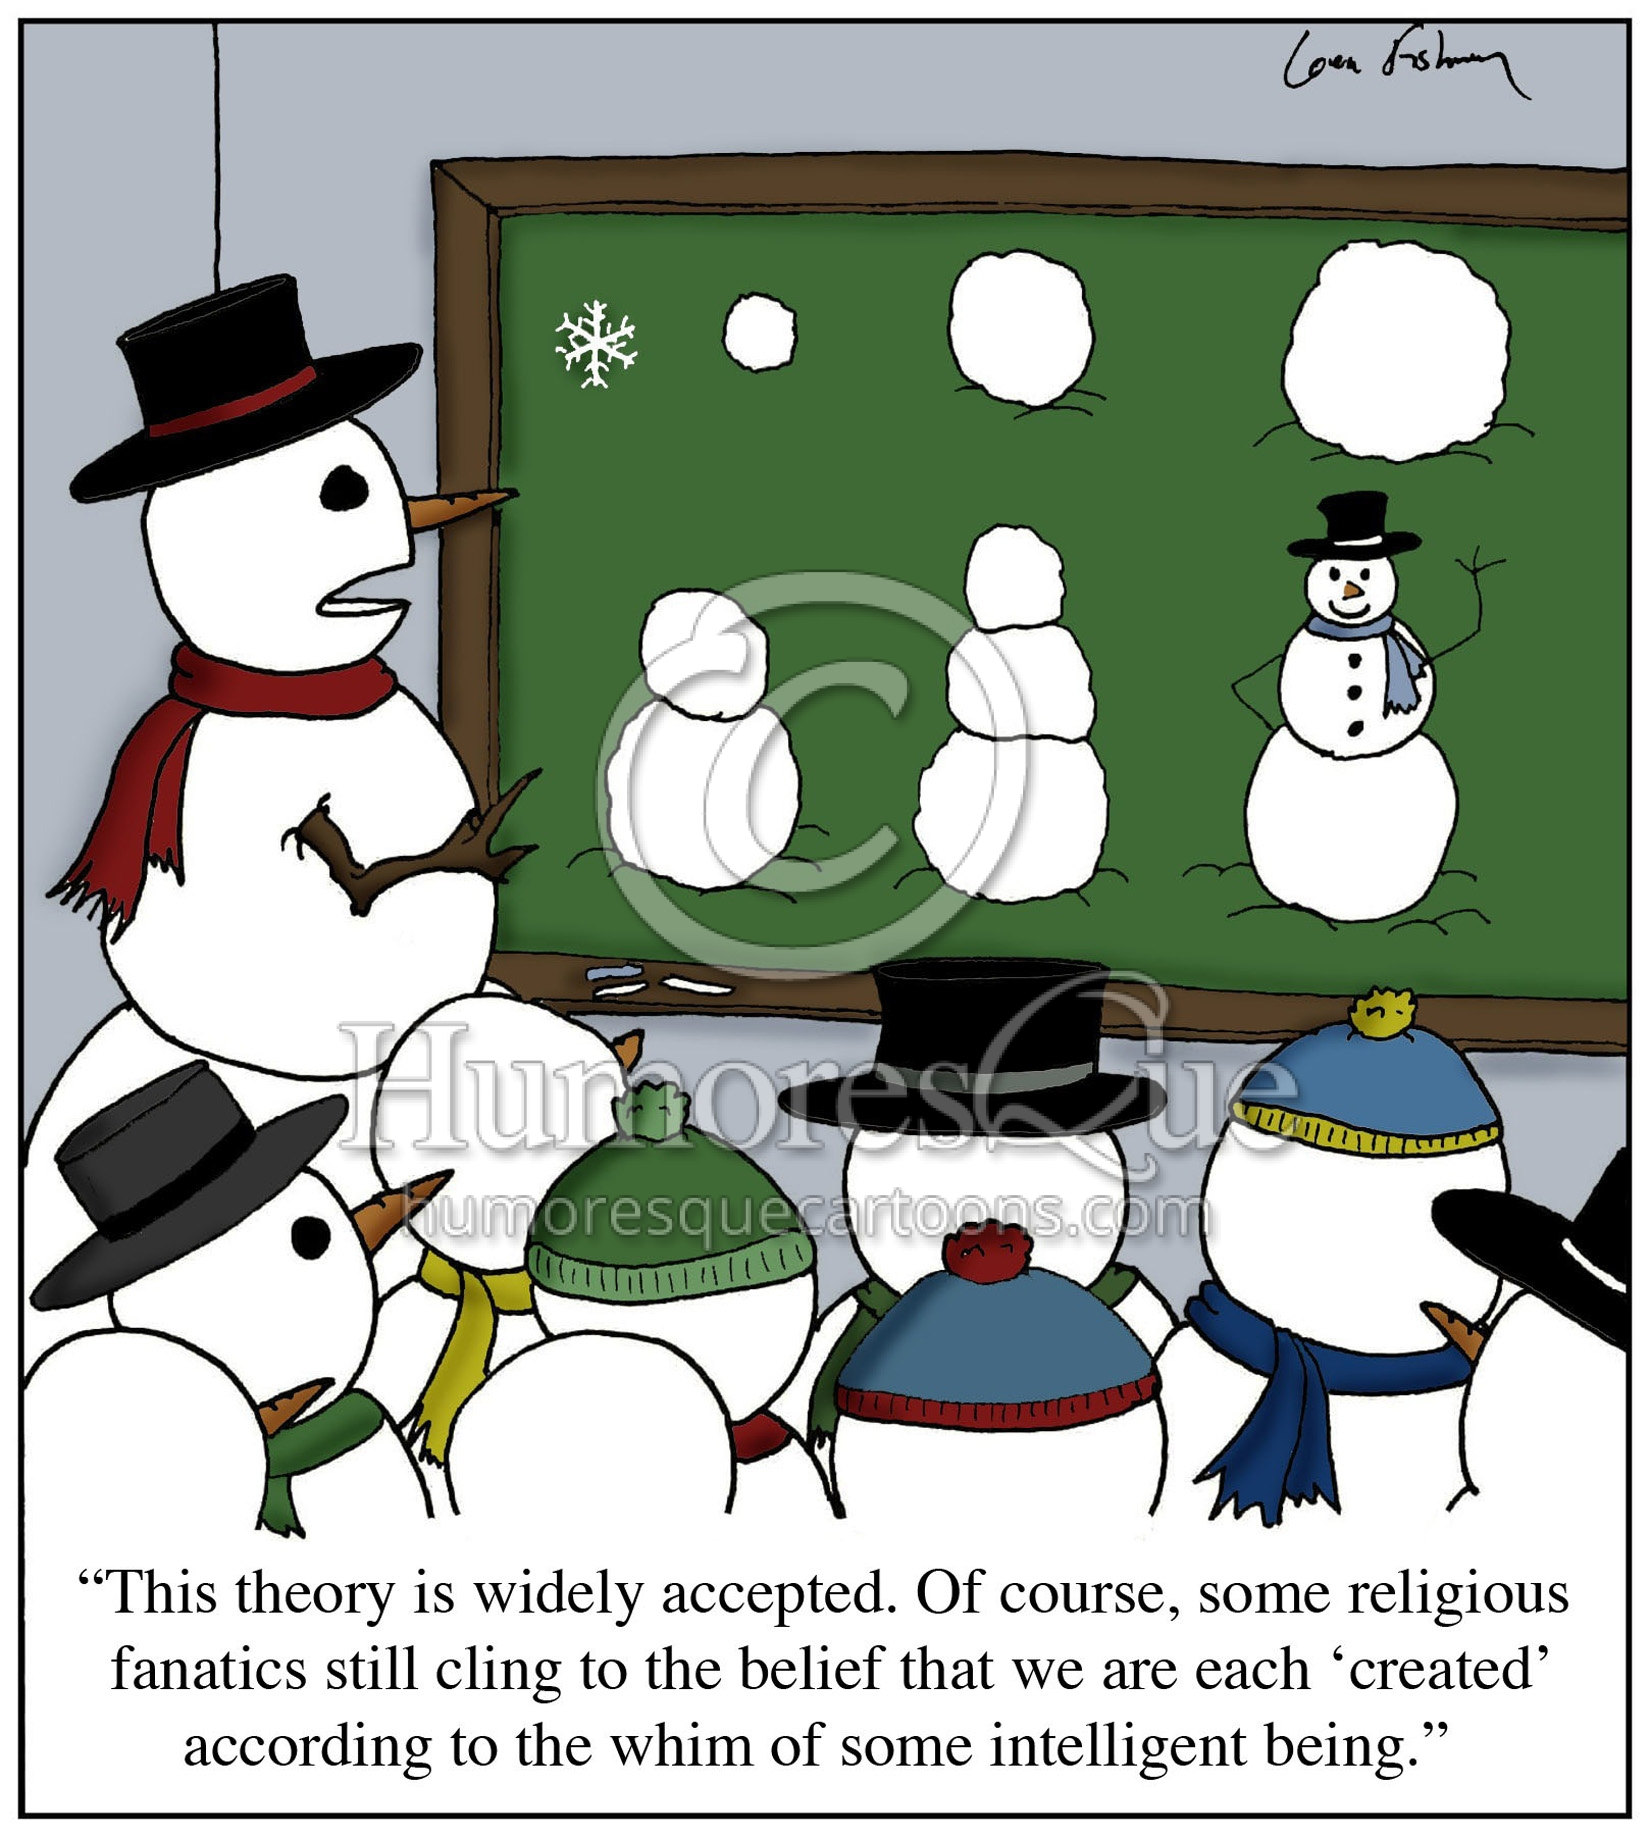 snowman evolution intelligent design religion in school cartoon